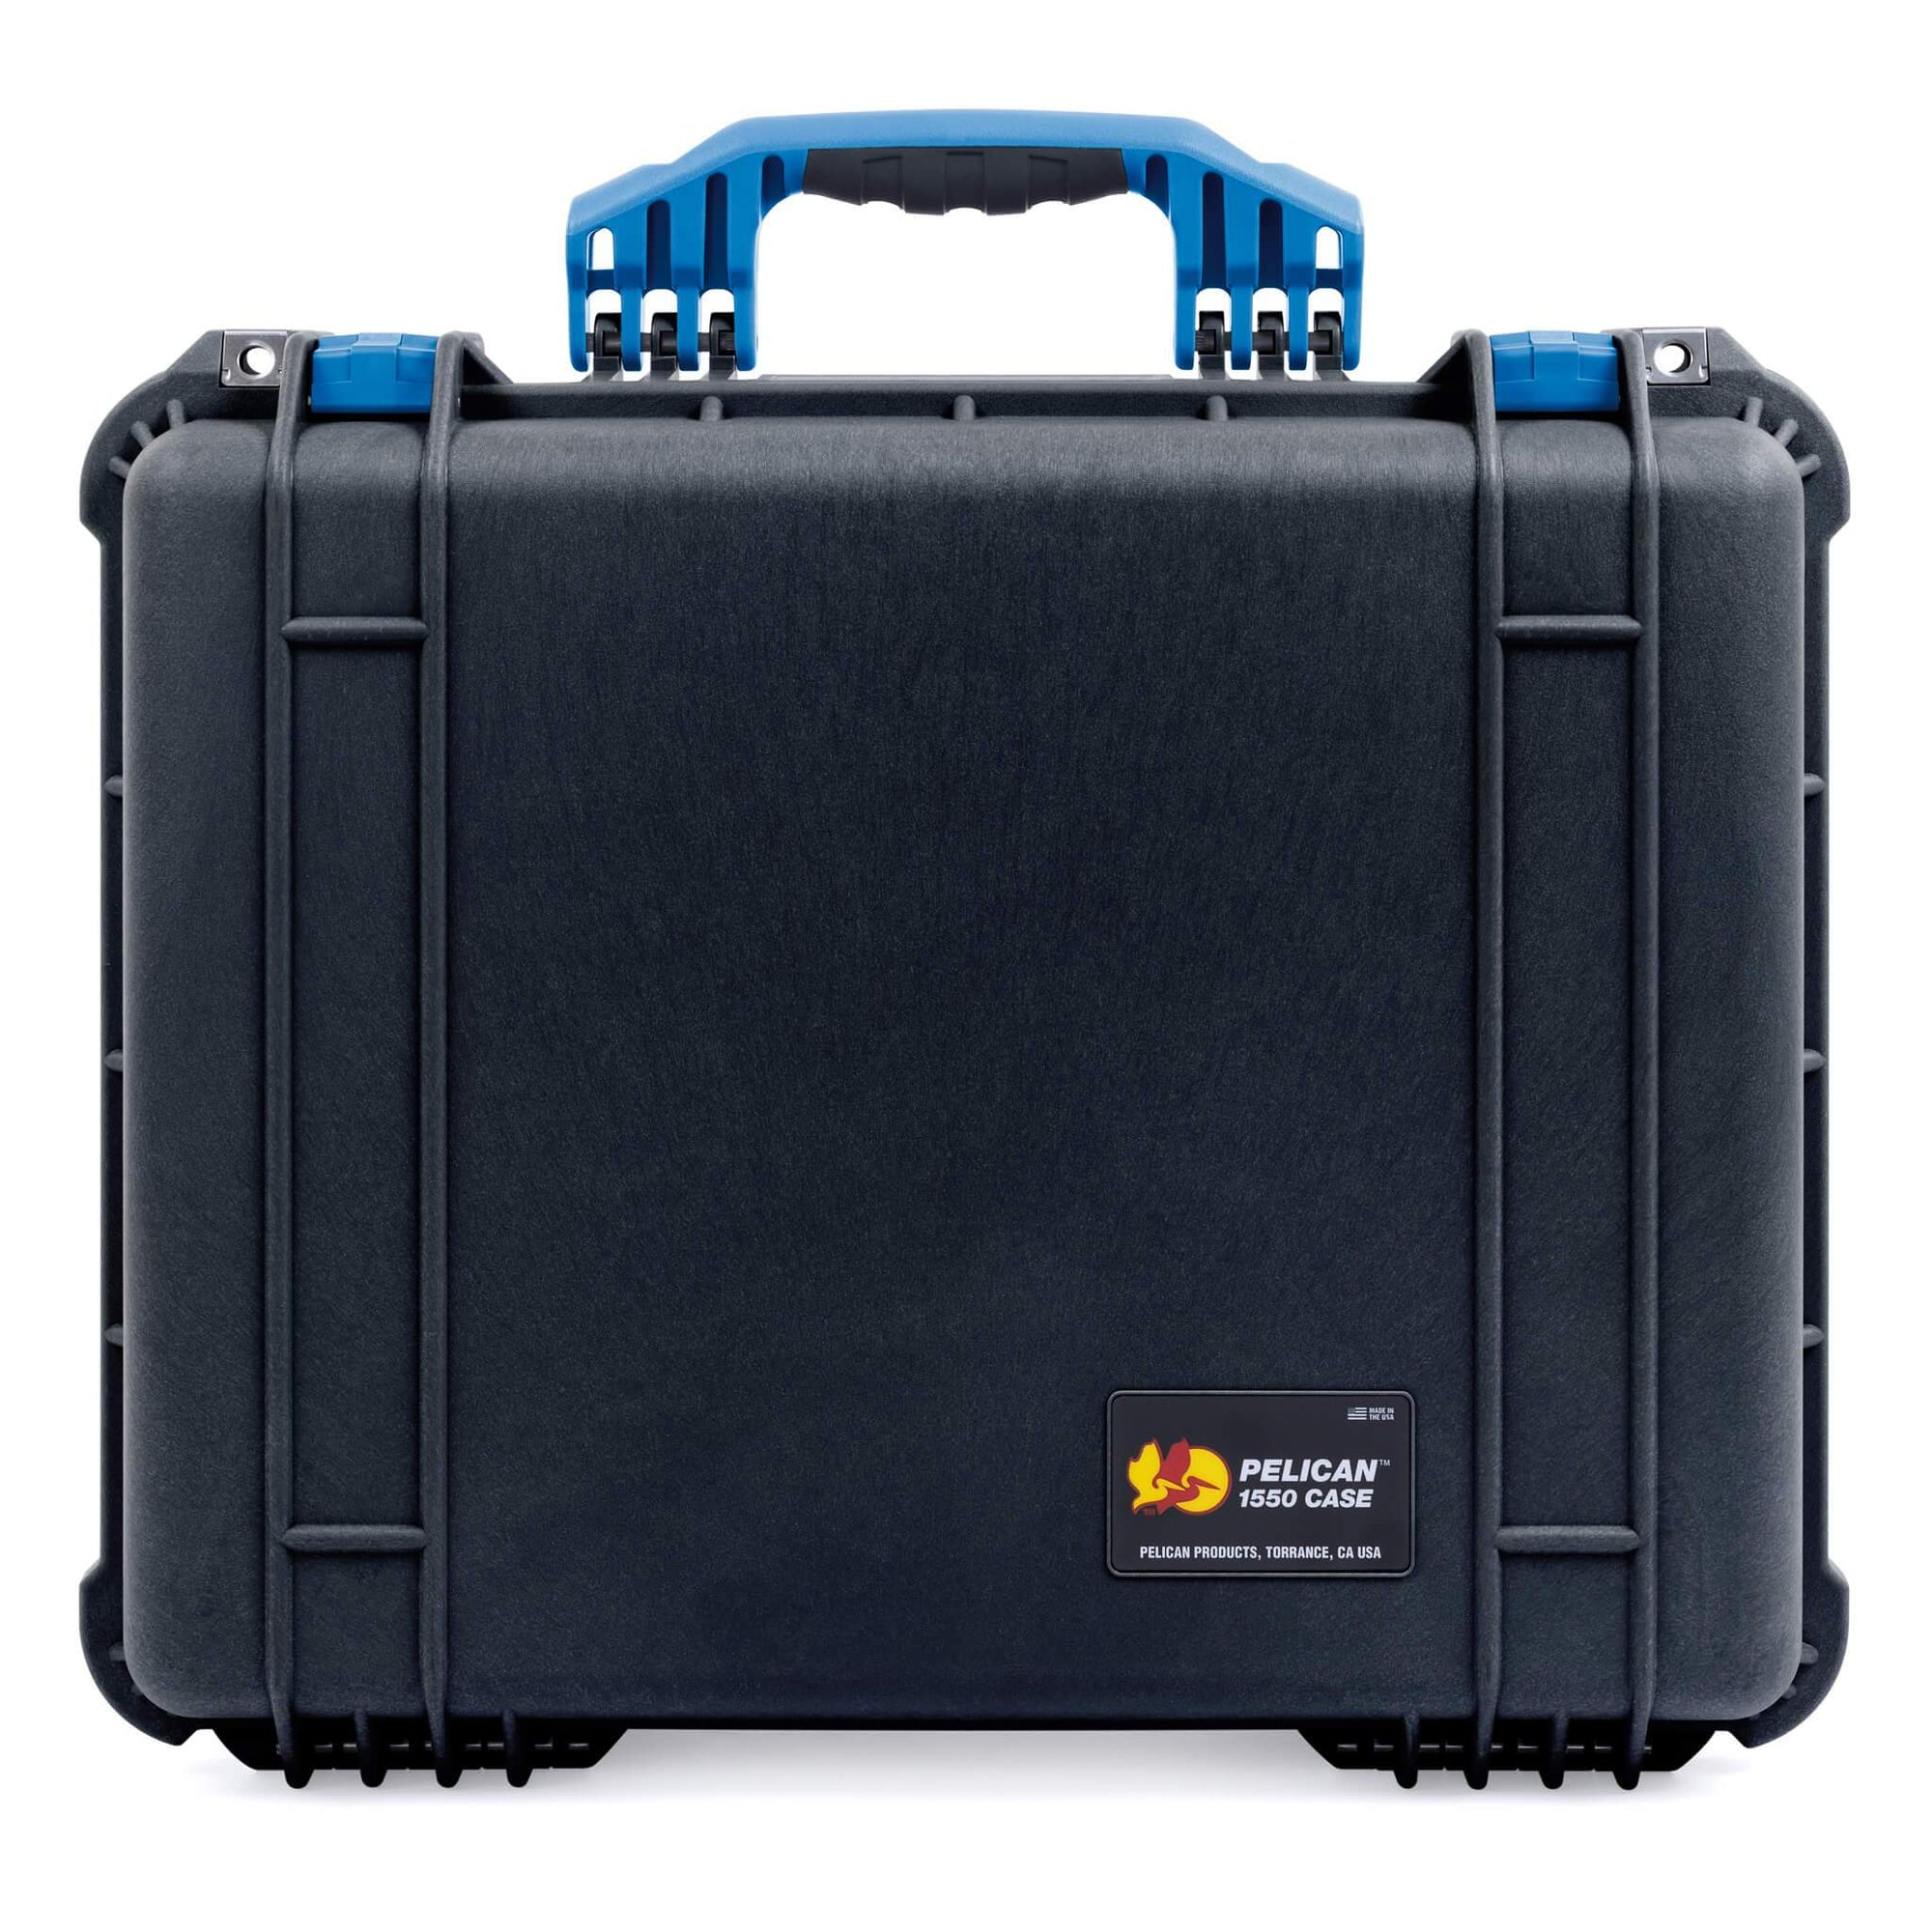 Pelican 1550 Case, Black with Blue Handle & Latches